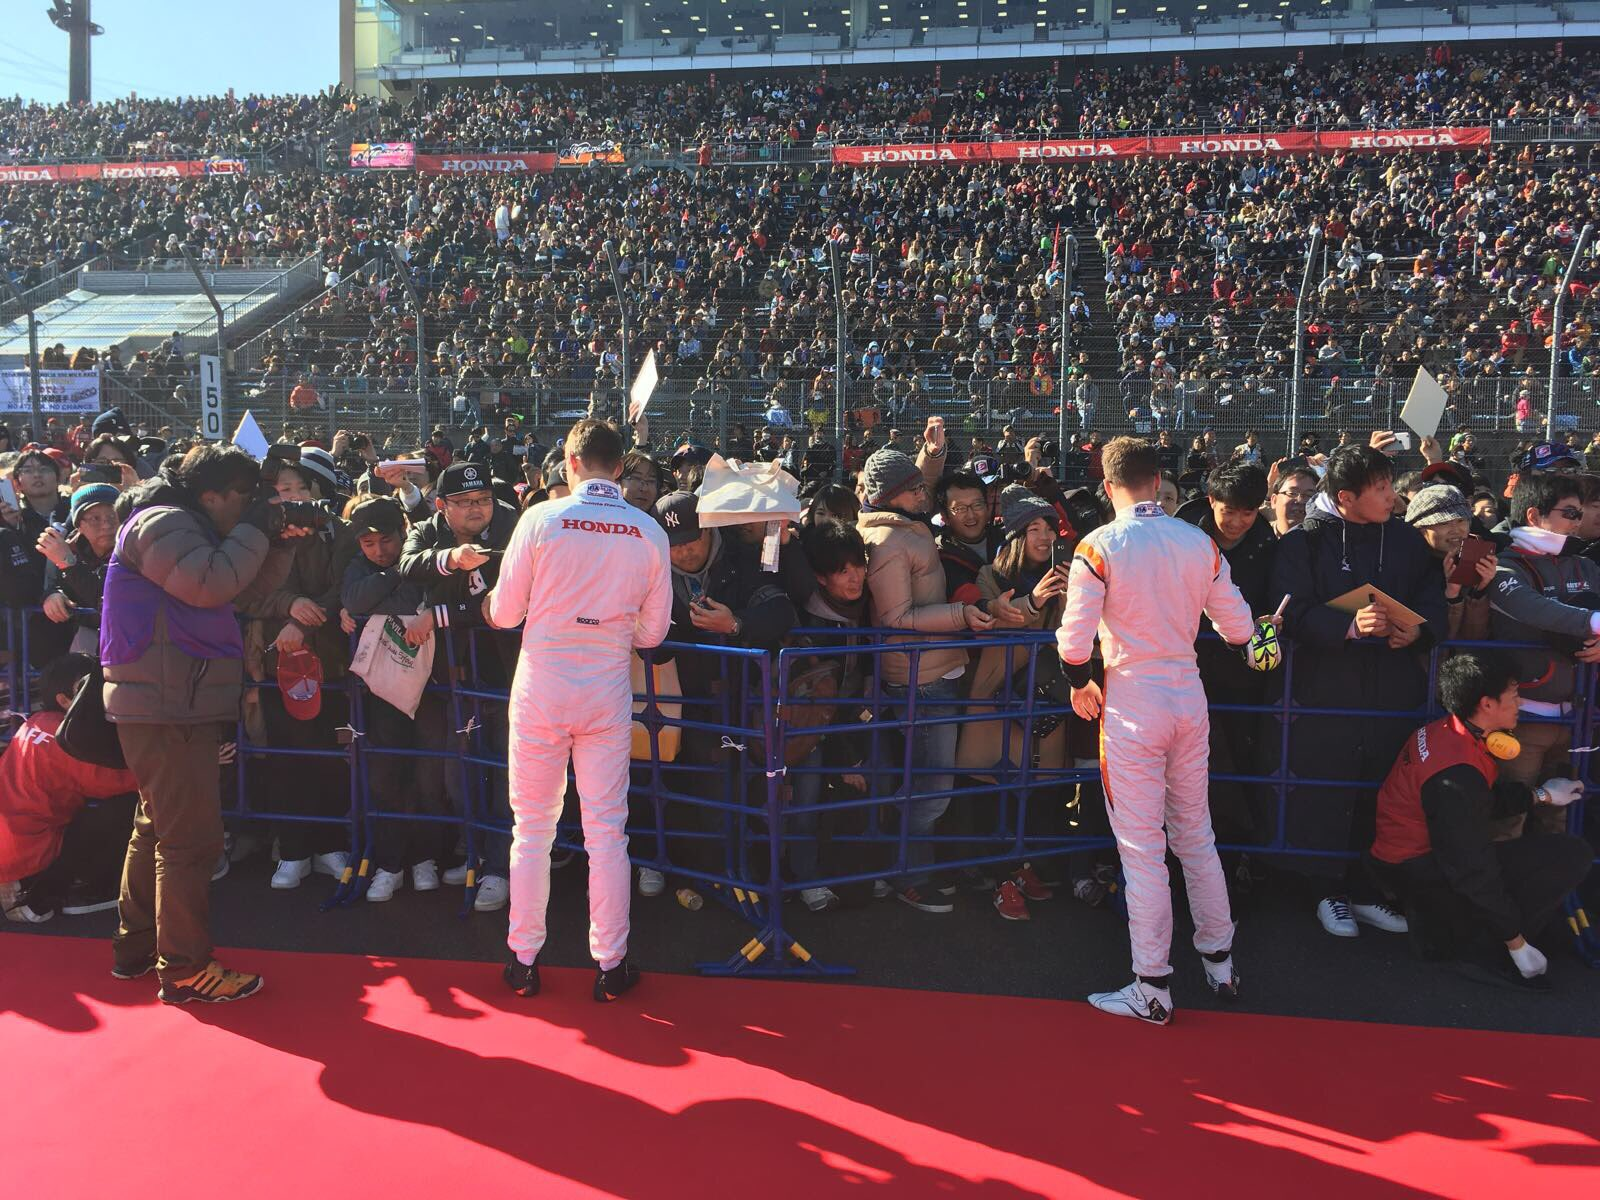 RT @McLarenF1: That's one mega crowd at the Honda Racing Thanks Day. Thanks for all of your support! 👏 #HRTD2017 https://t.co/xP1v2DKetD